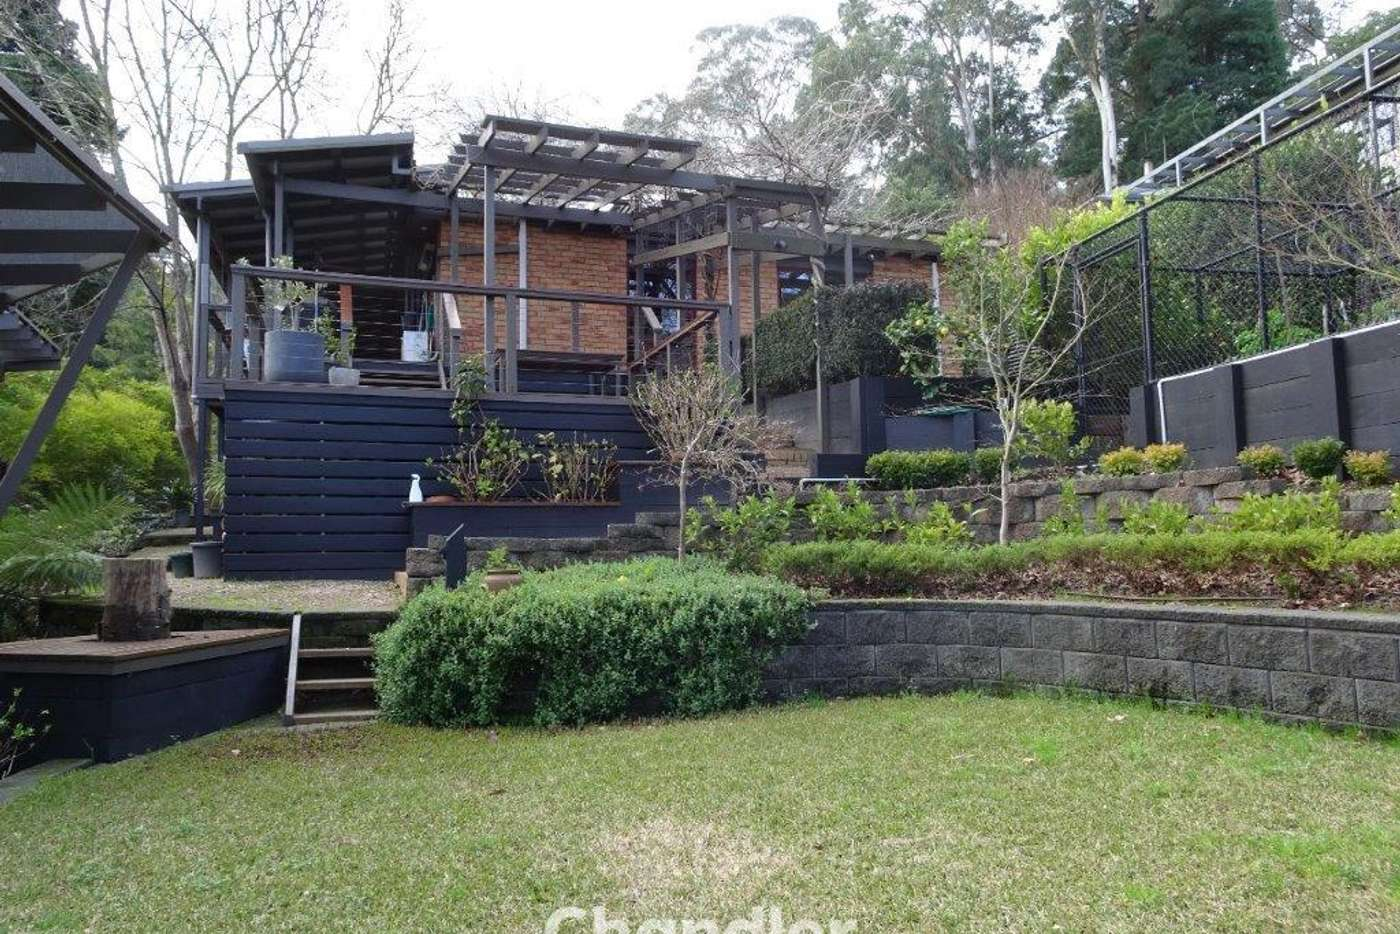 Main view of Homely house listing, 76 Mast Gully Road, Upwey VIC 3158